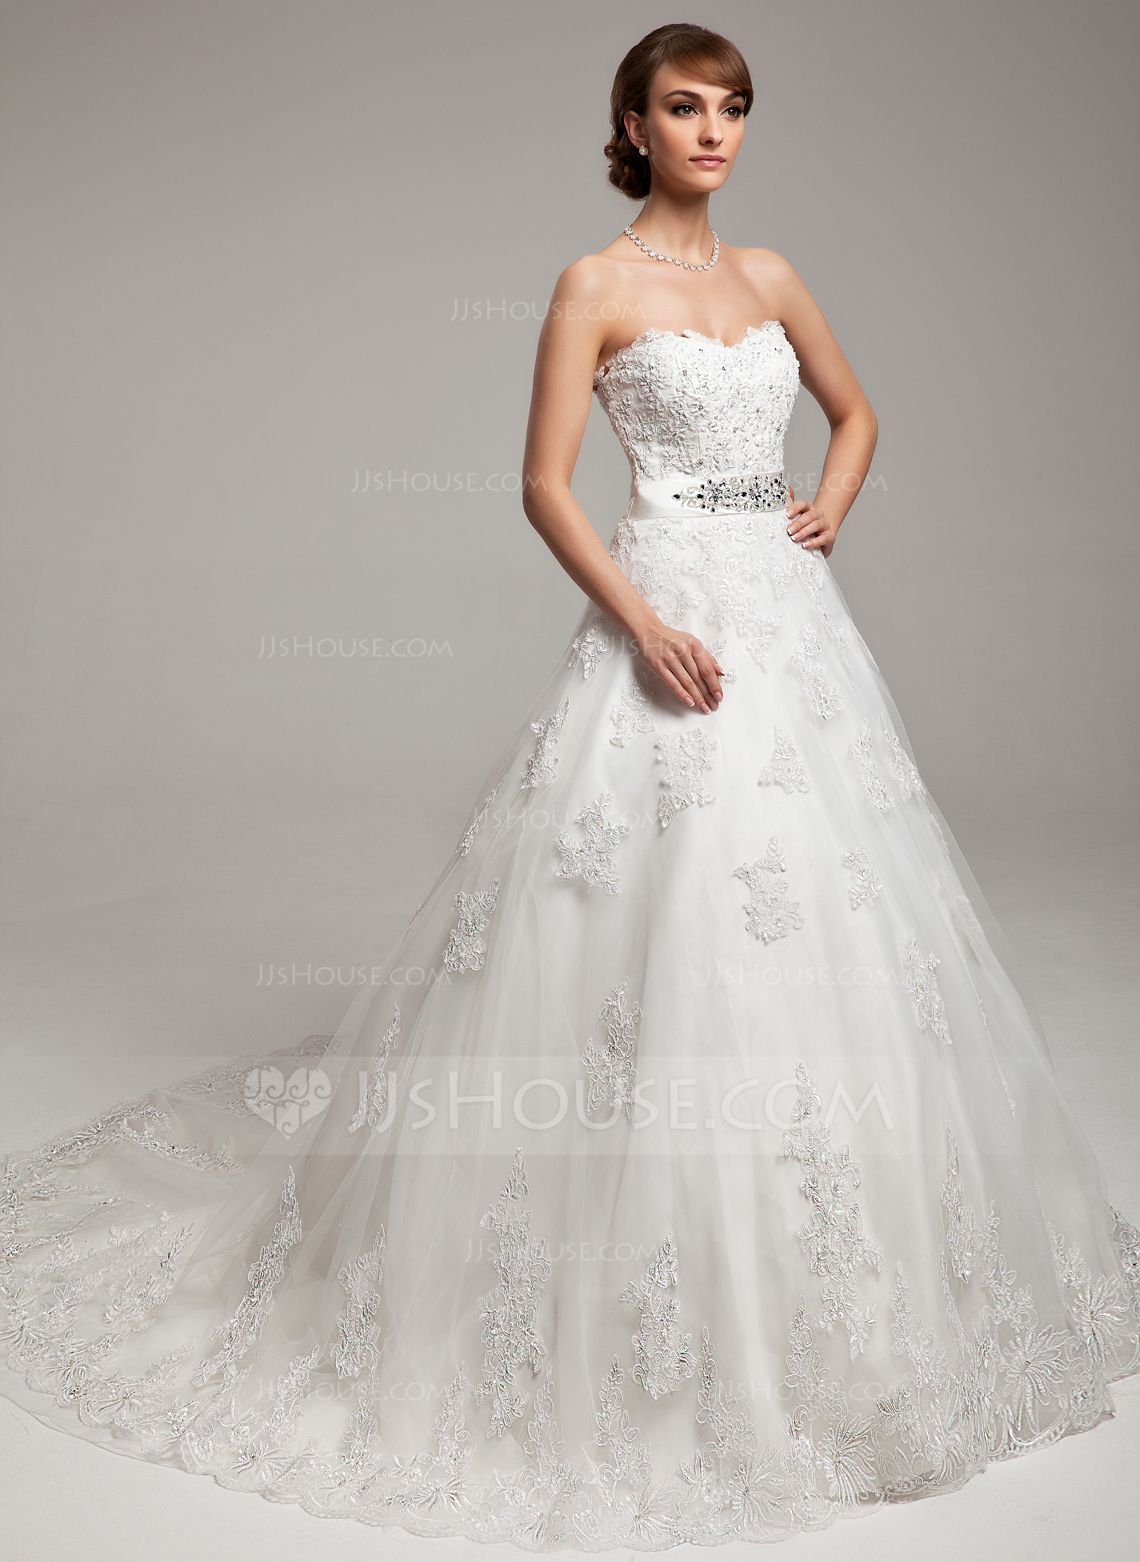 3a57797cc0 Ball-Gown Sweetheart Chapel Train Organza Charmeuse Wedding Dress With Lace  Beading Bow(s) (002017538) - JJsHouse